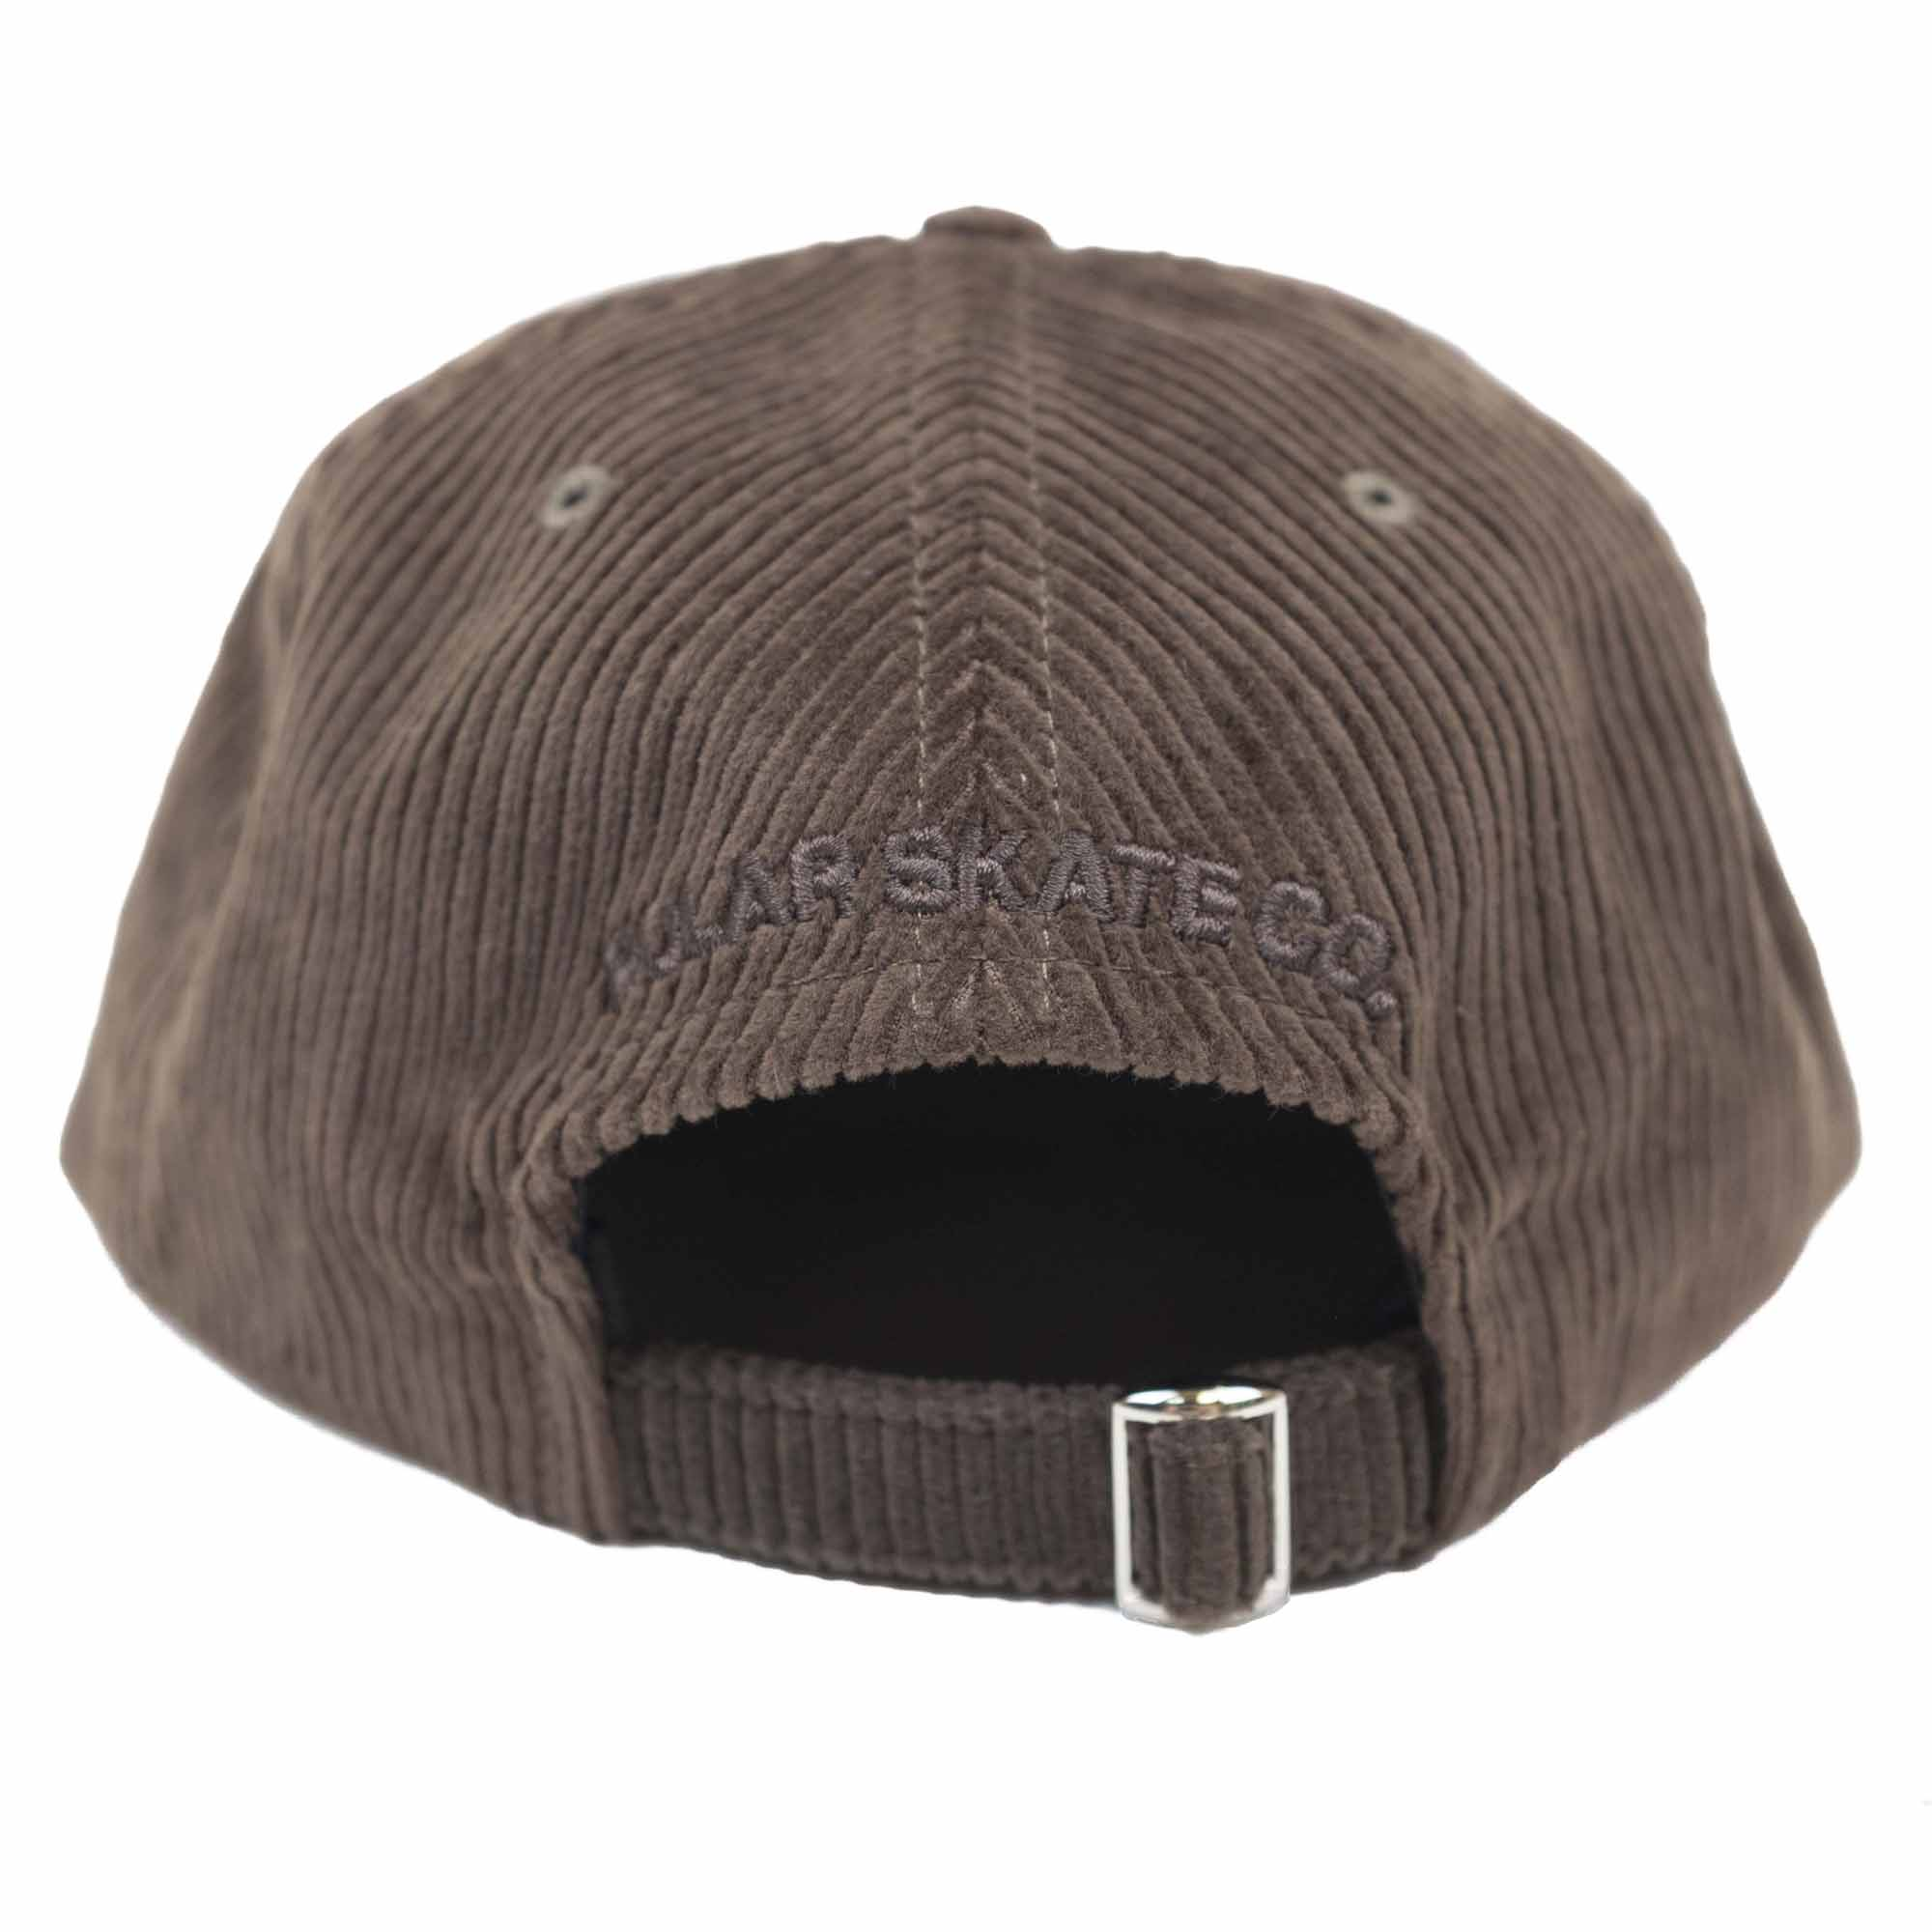 973055b0c76 Polar Skate Co. Corduroy Cap - Brown